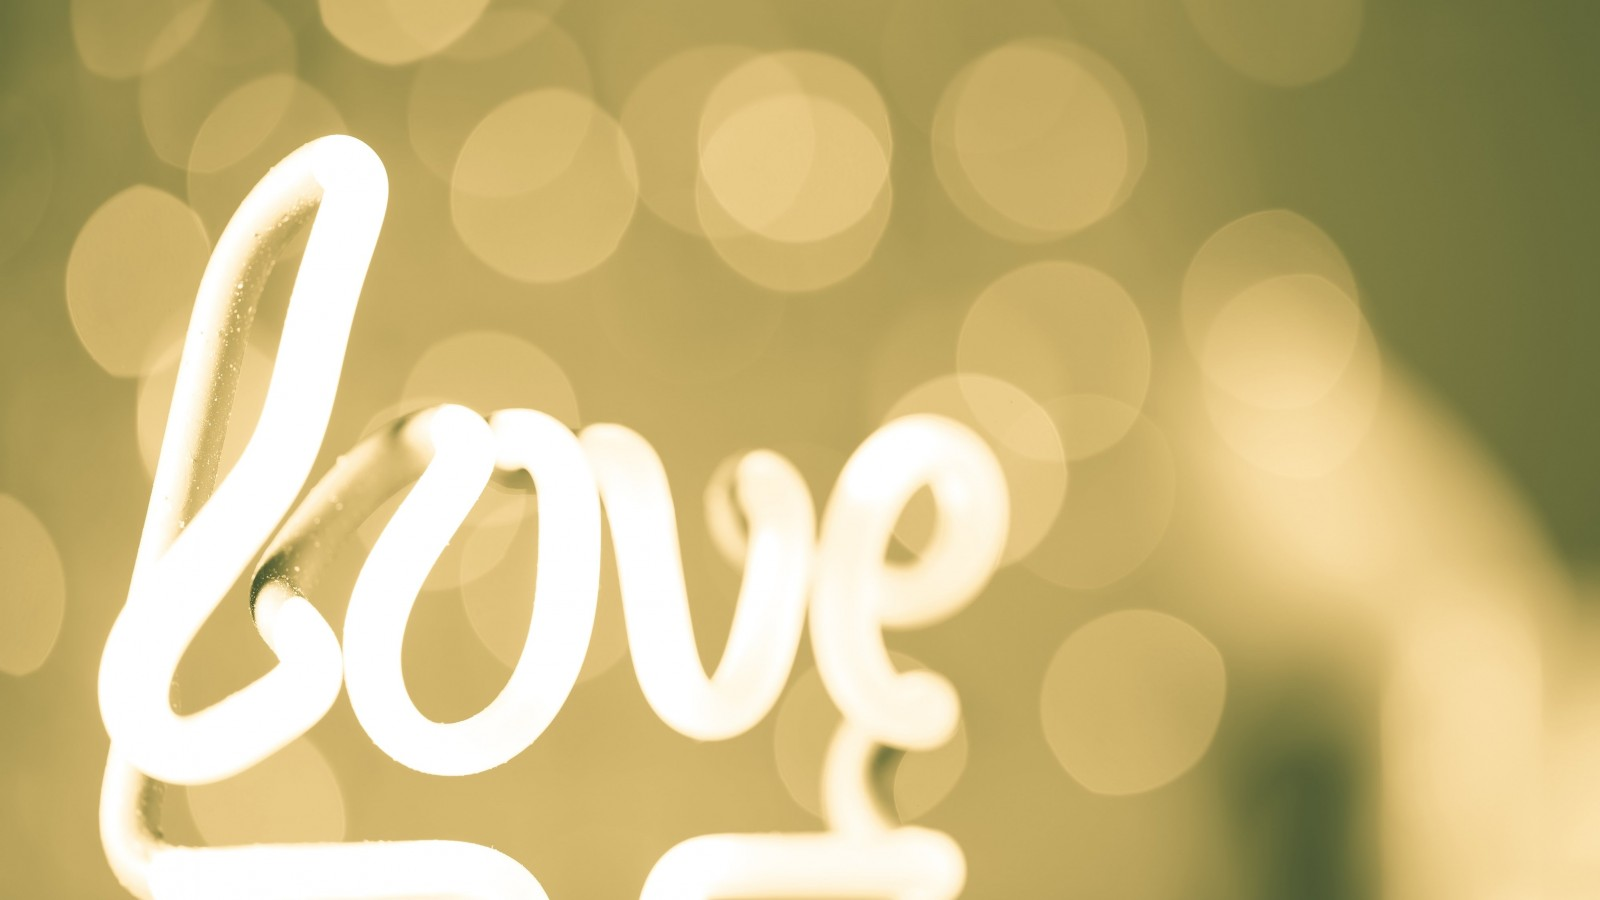 Love Neon Light Typography Wallpaper for Desktop 1600x900